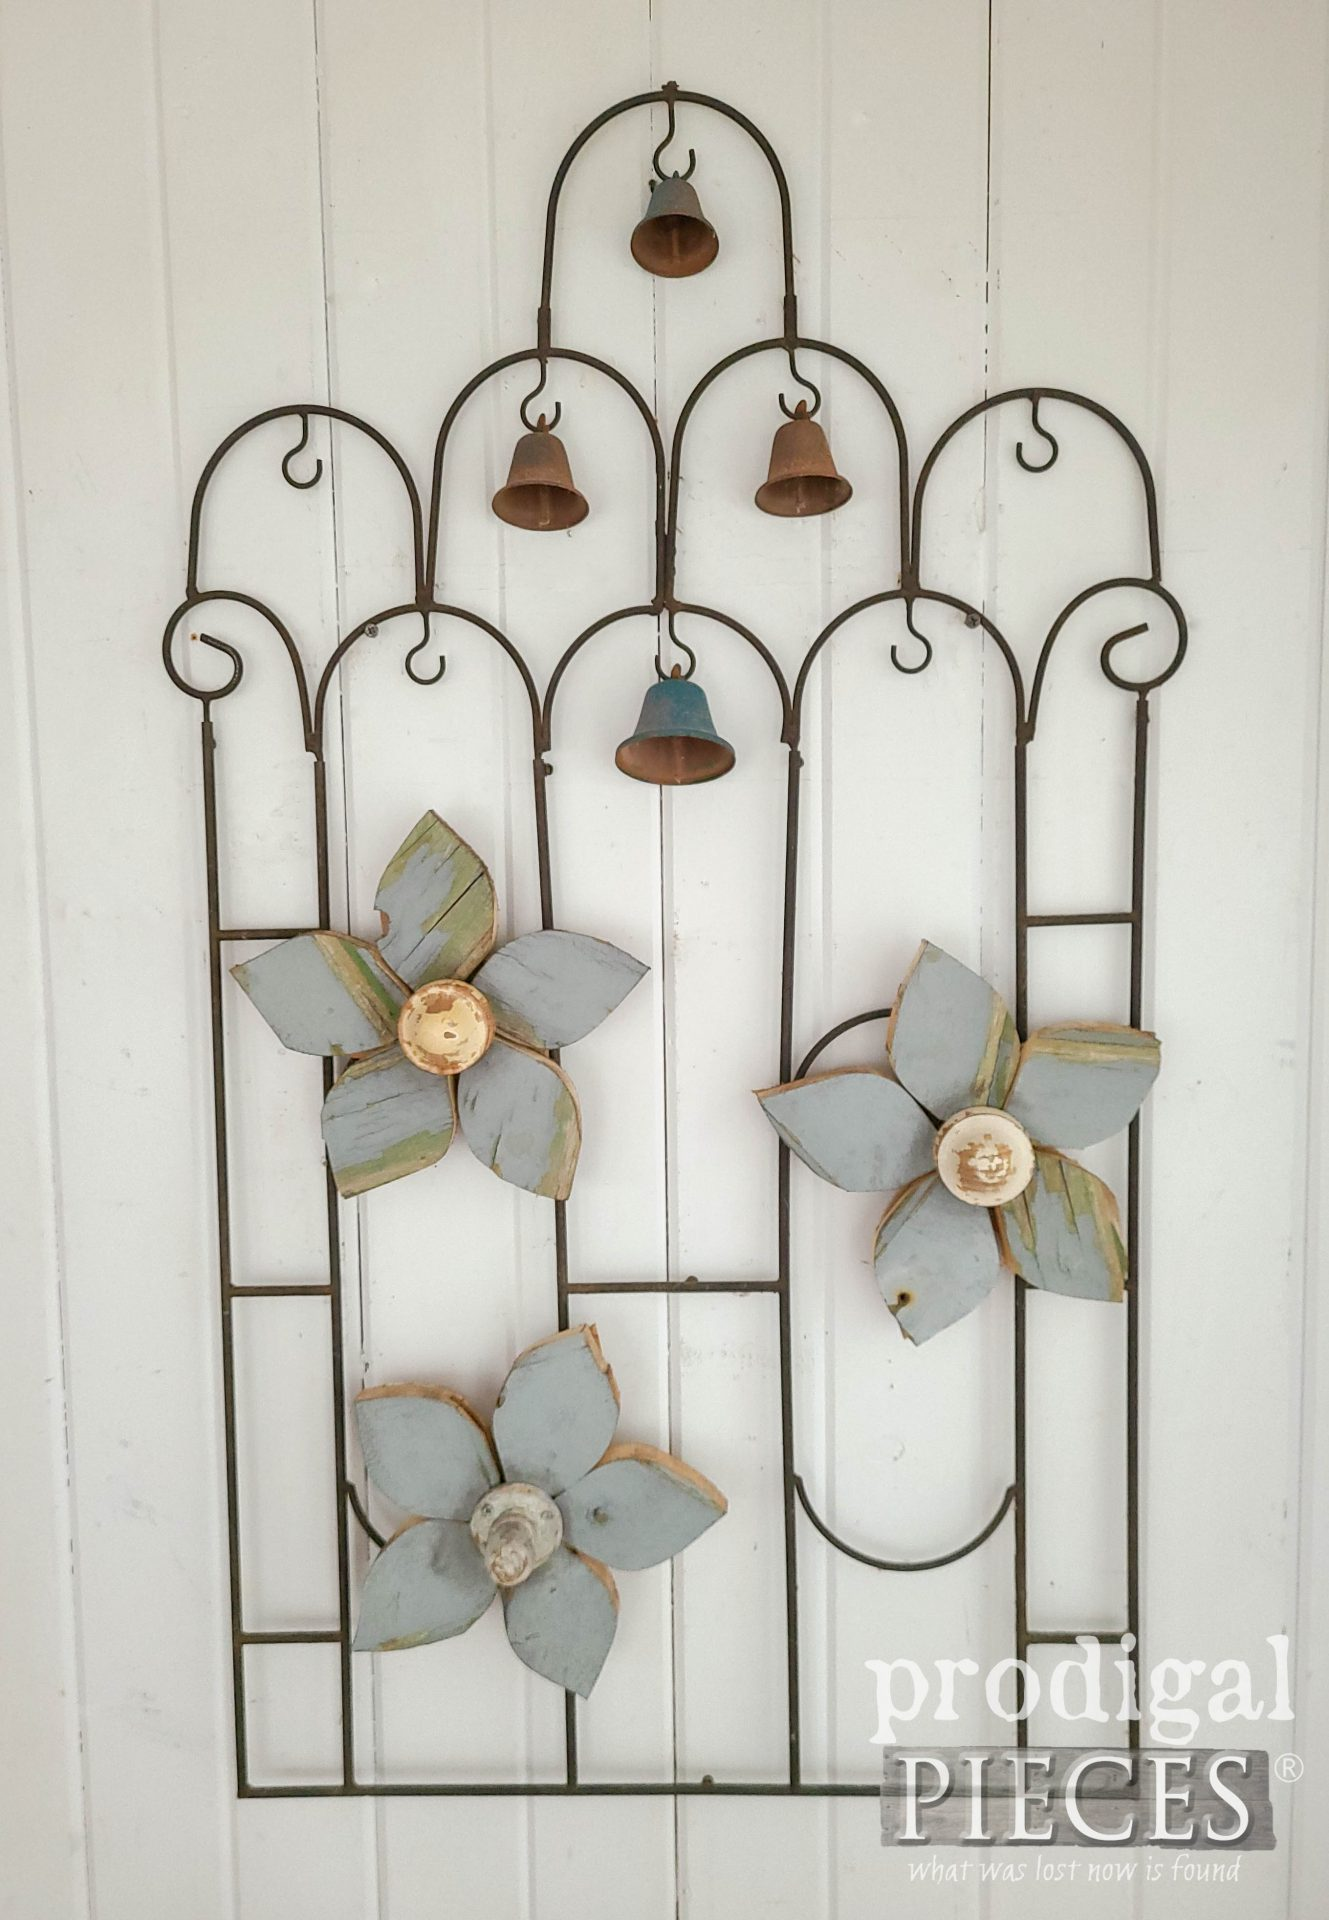 Rustic Salvaged Garden Art Created by Larissa of Prodigal Pieces | prodigalpieces.com #prodigalpieces #diy #art #garden #home #homedecor